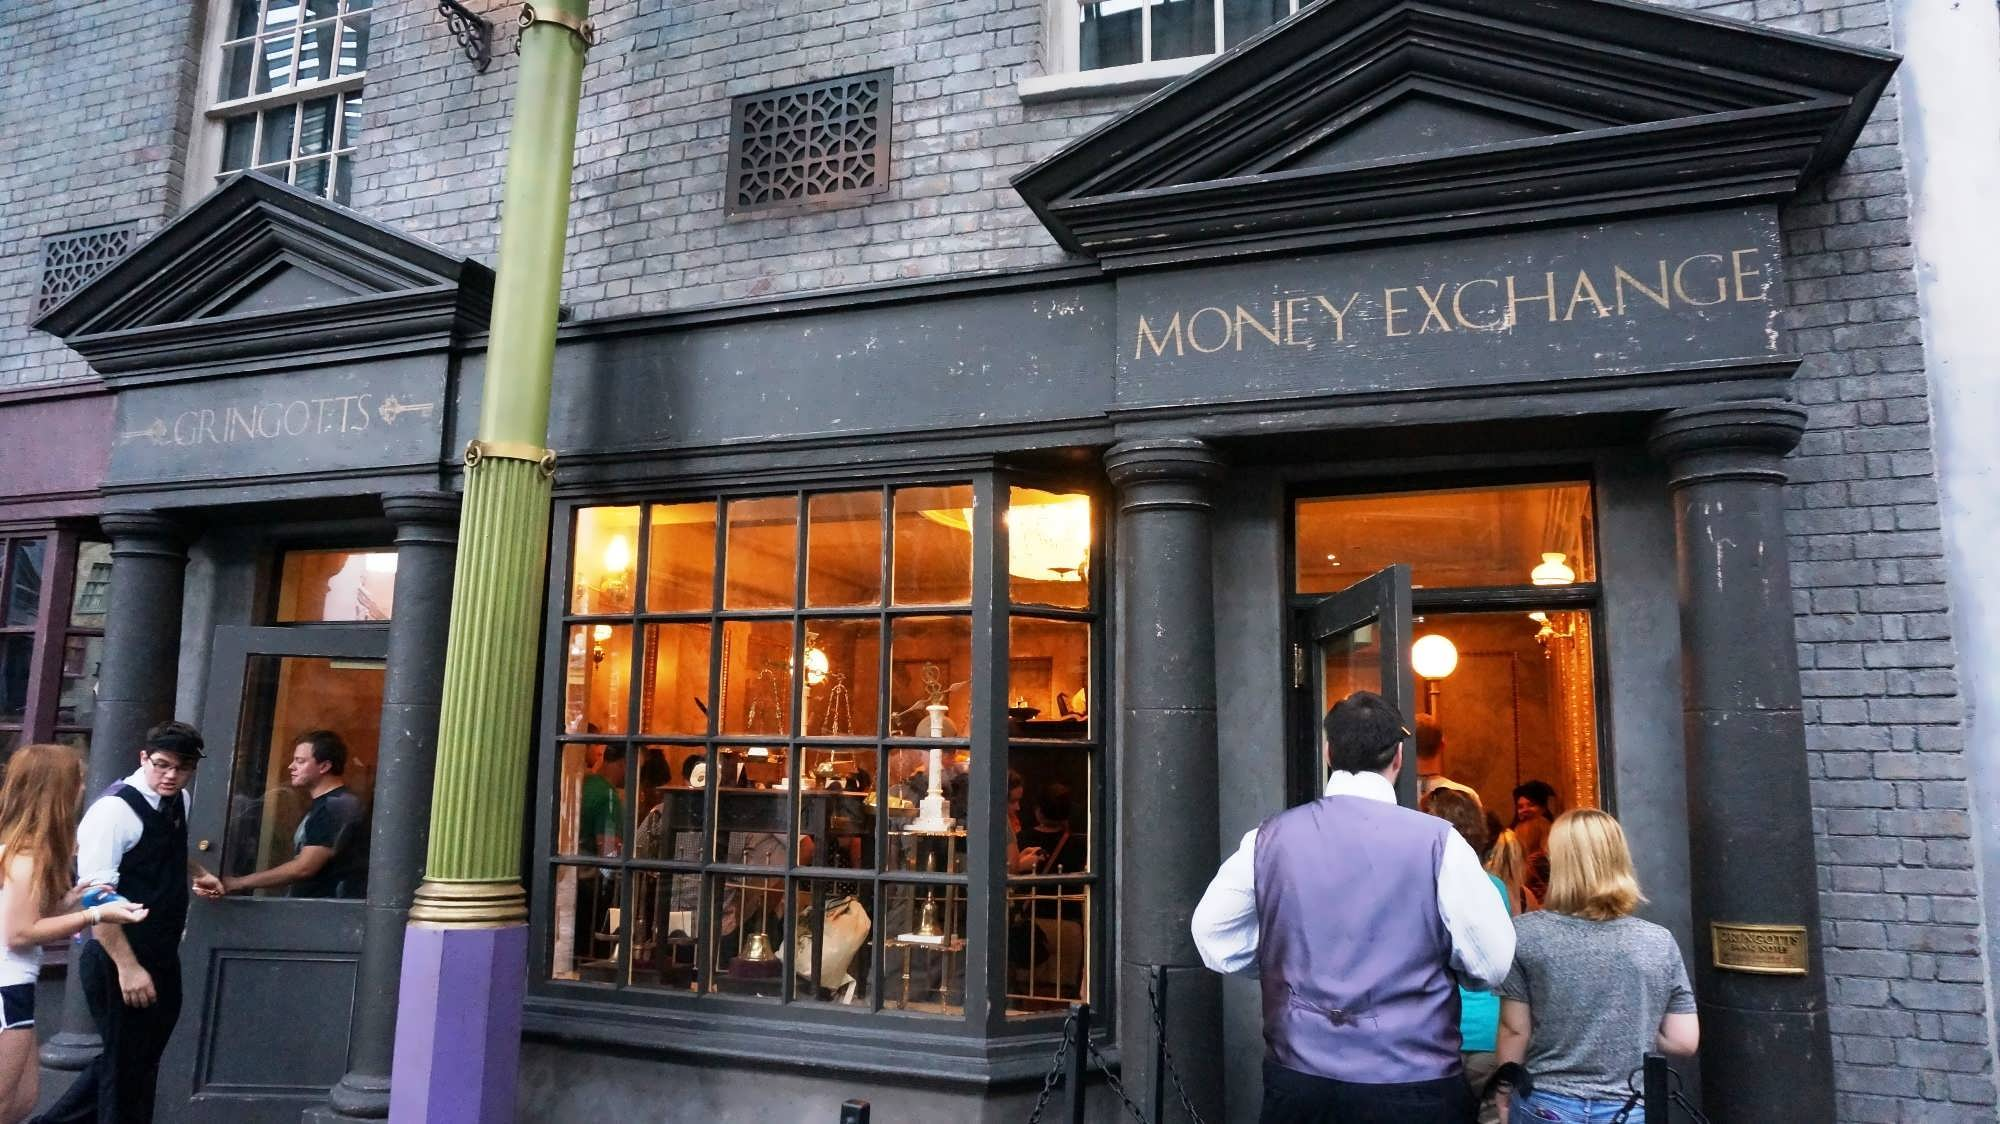 Gringotts Money Exchange at the Wizarding World of Harry Potter - Diagon Alley